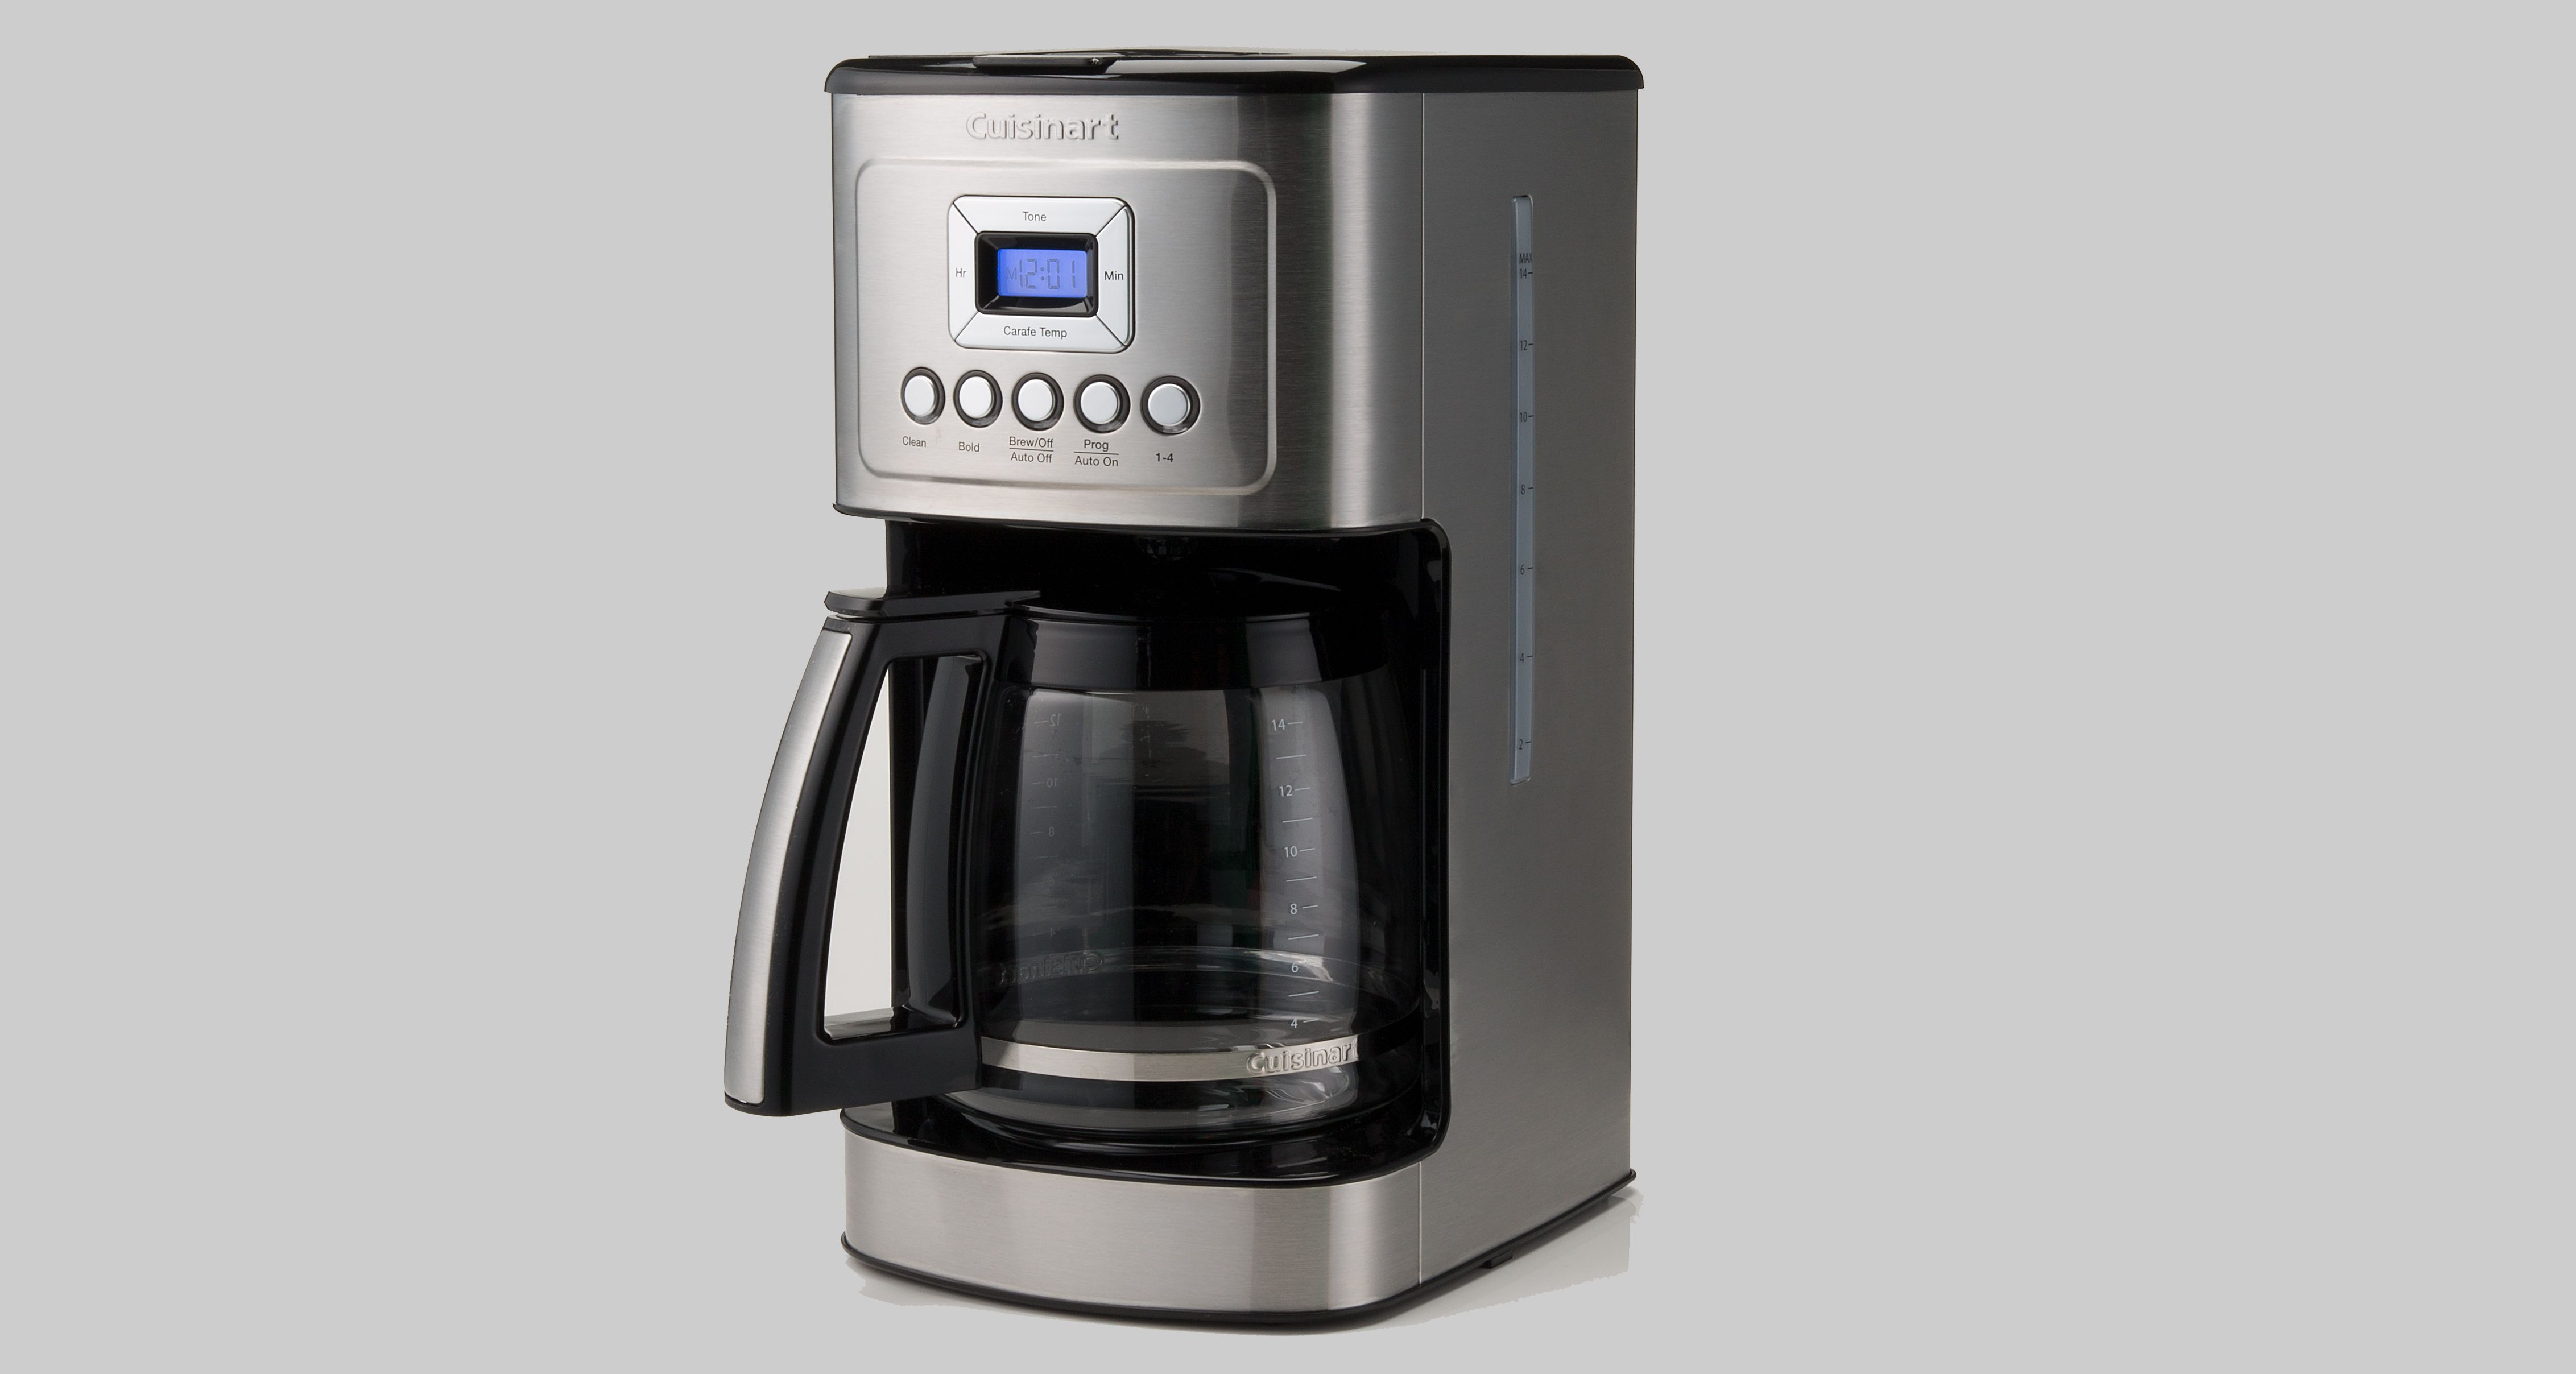 Best Electric Coffee Maker Cuisinart Coffee Maker Is The New Champ In Consumer Reports Tests